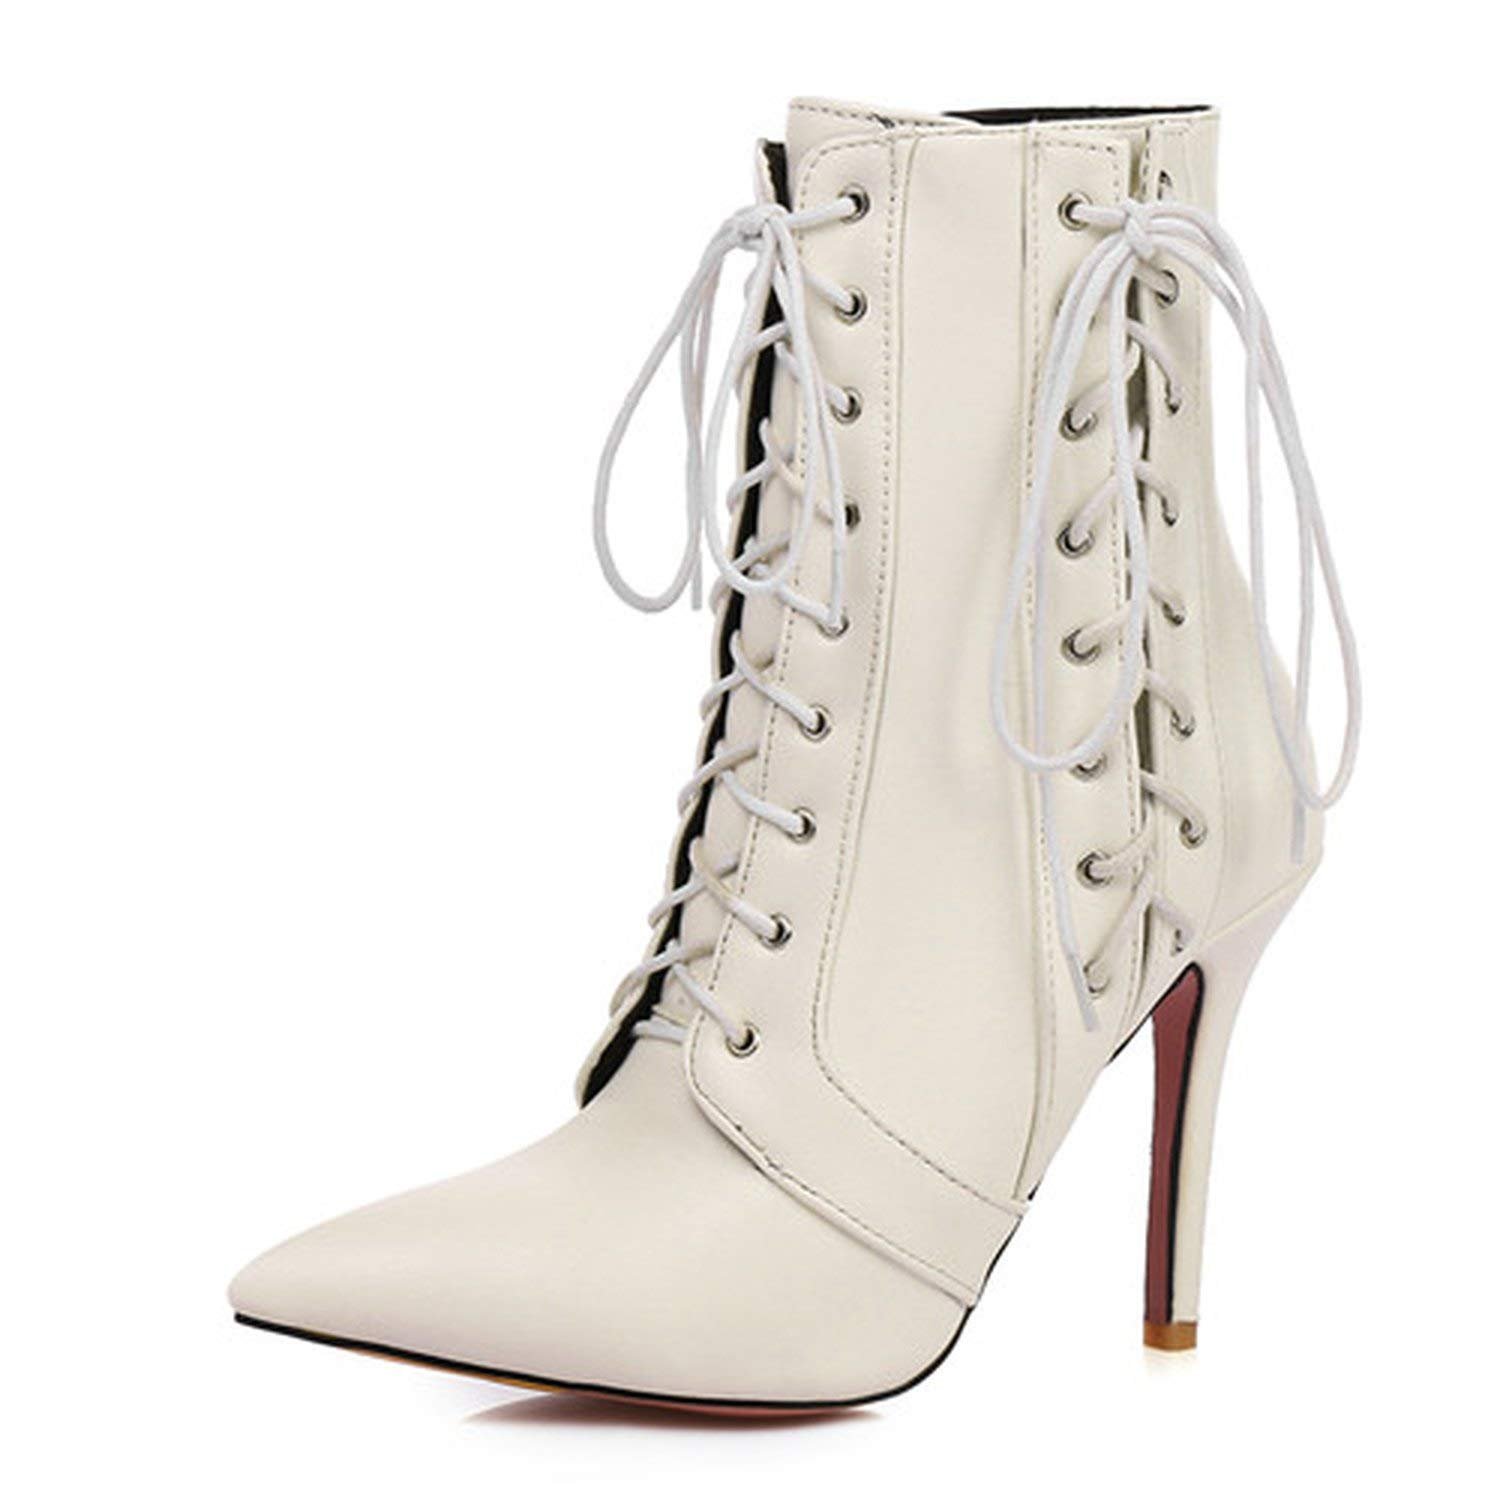 White Ankle Boots for Women Platform High Heels Female Lace Up shoesn Buckle Short Boot